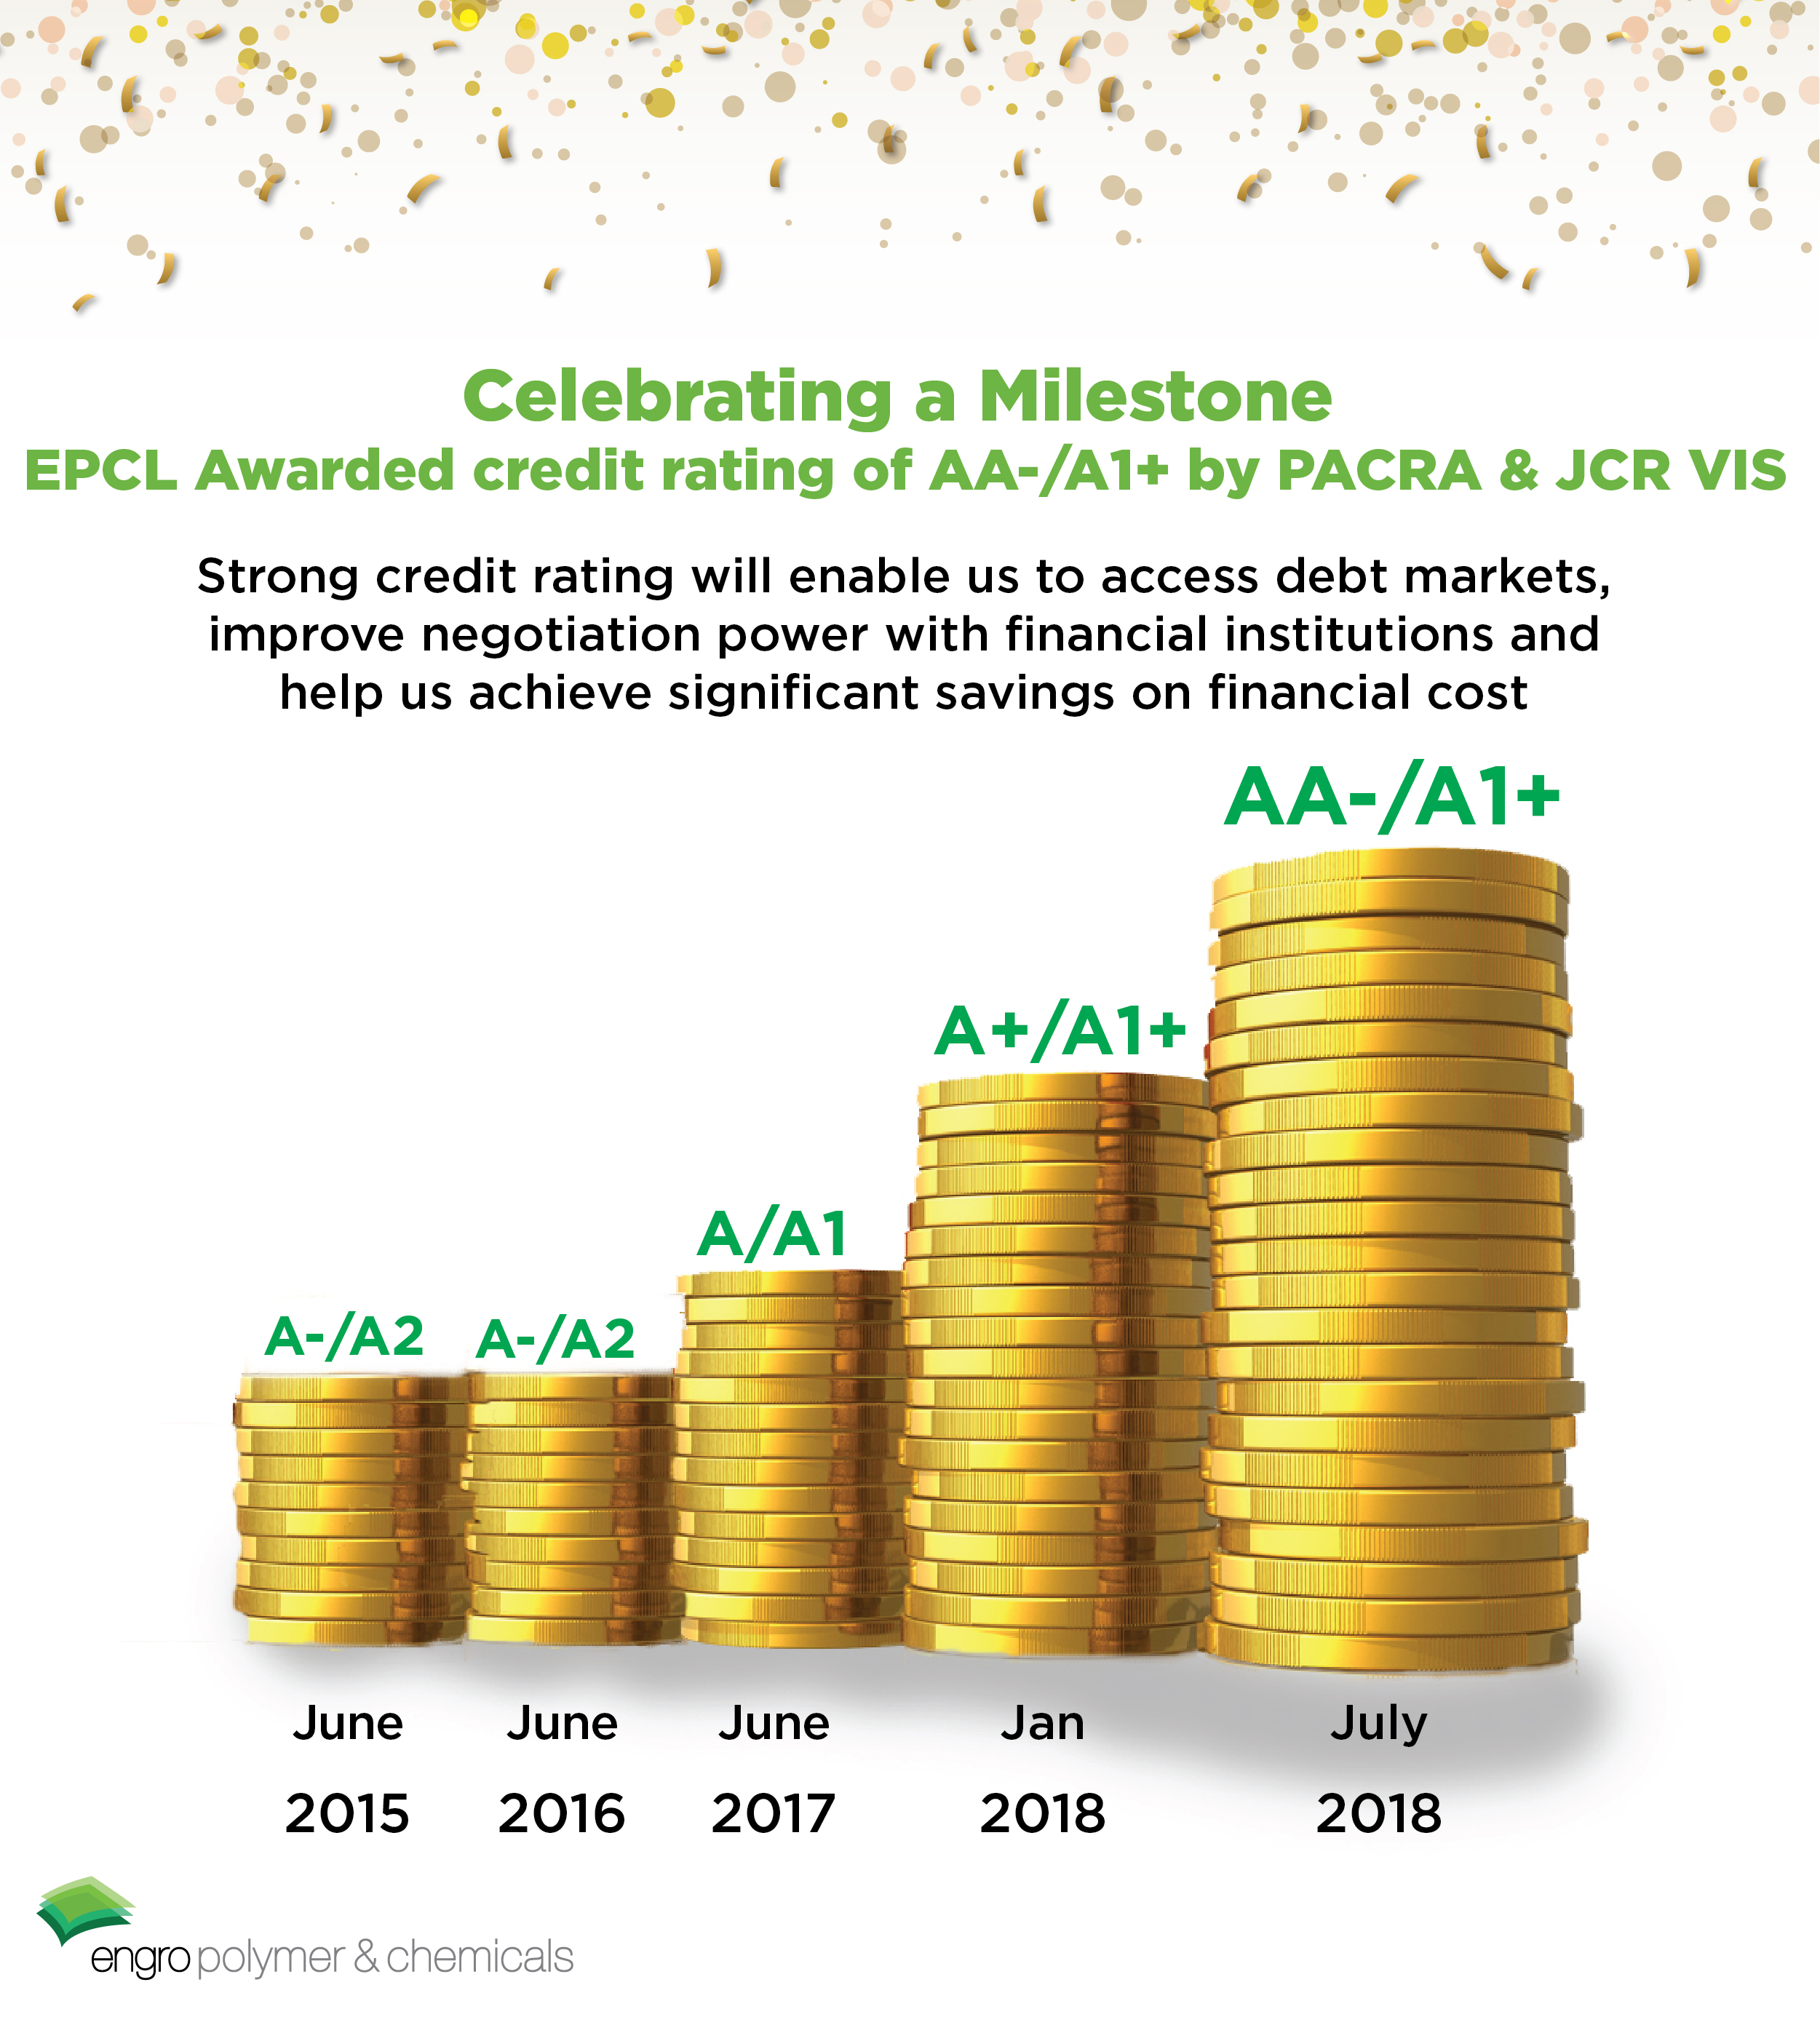 EPCL Awarded credit rating of AA-/A1+